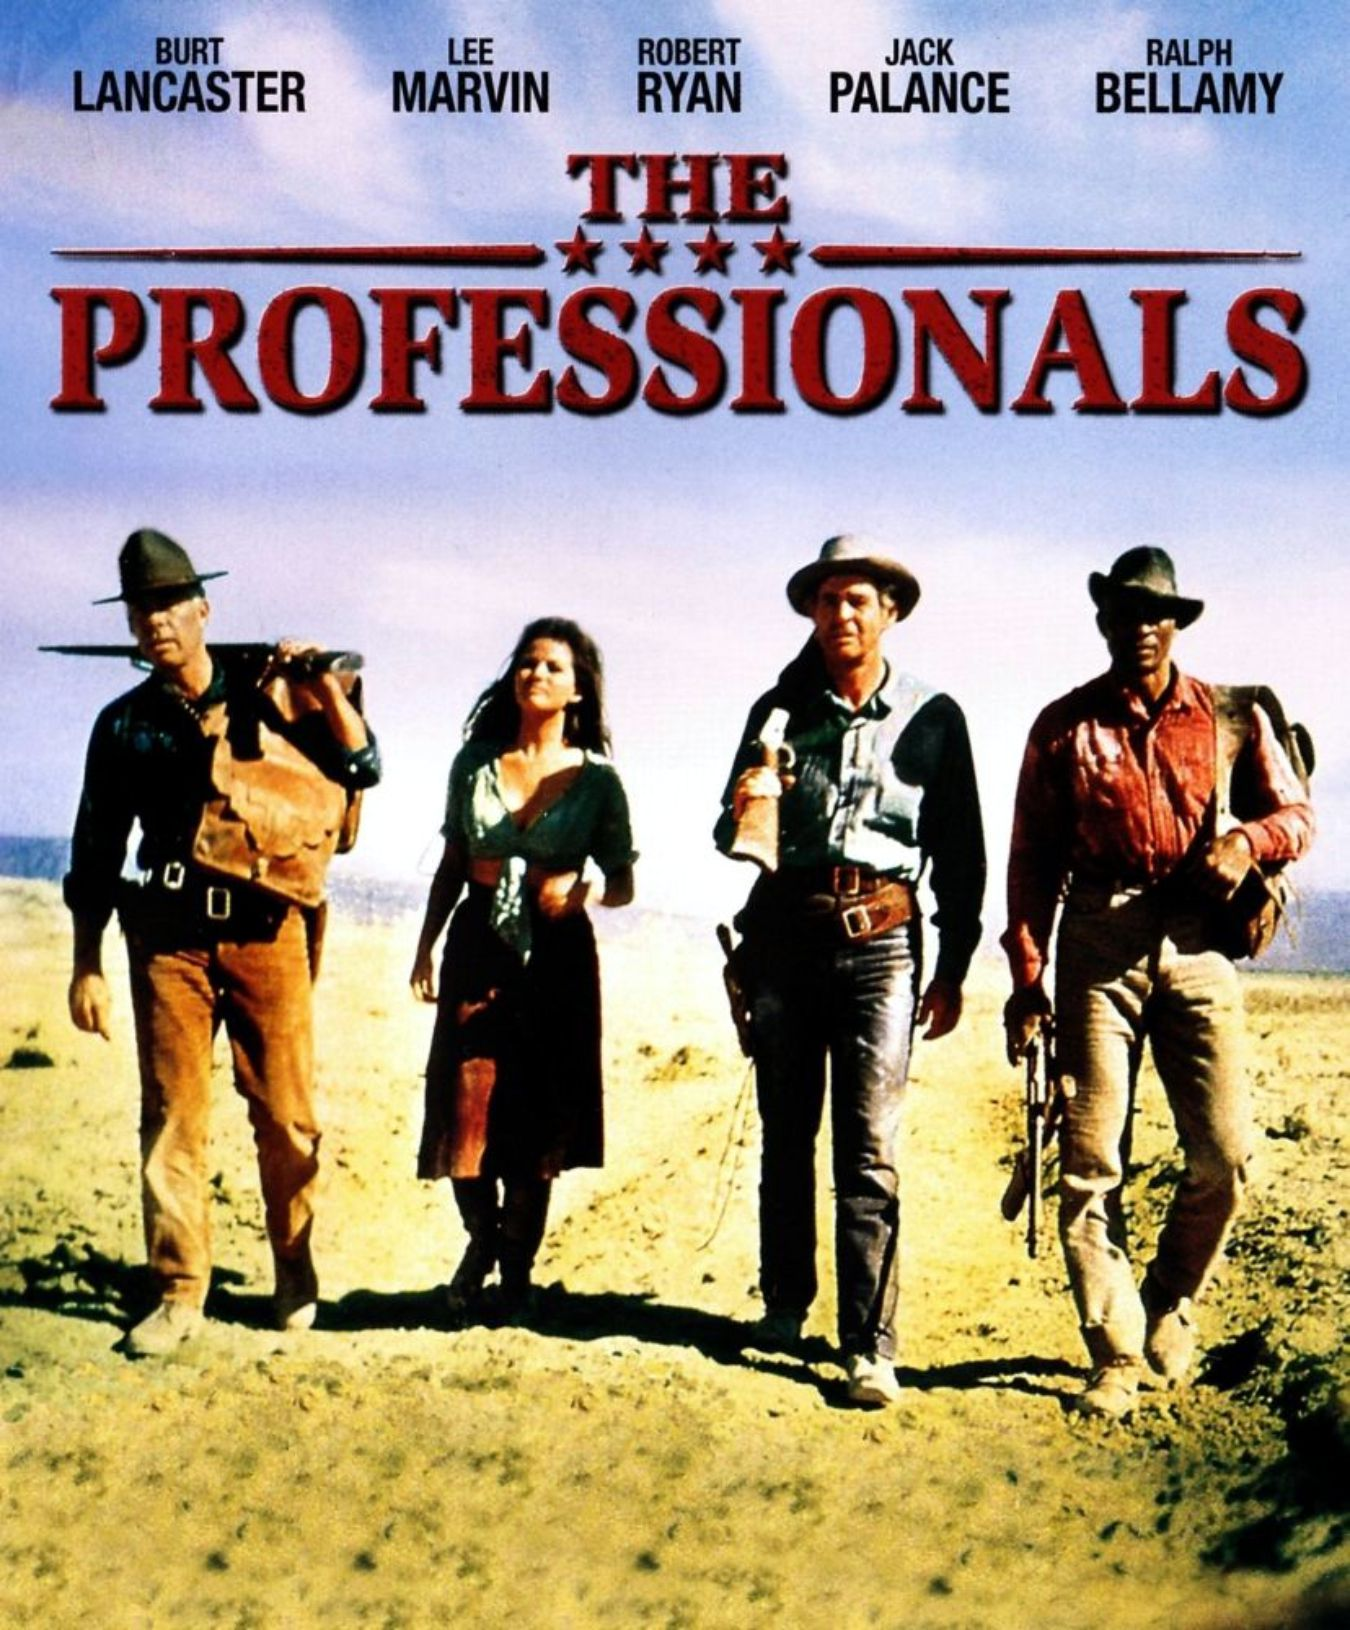 THE WEST IS THE BEST - Página 3 The-professionals-marketing-2